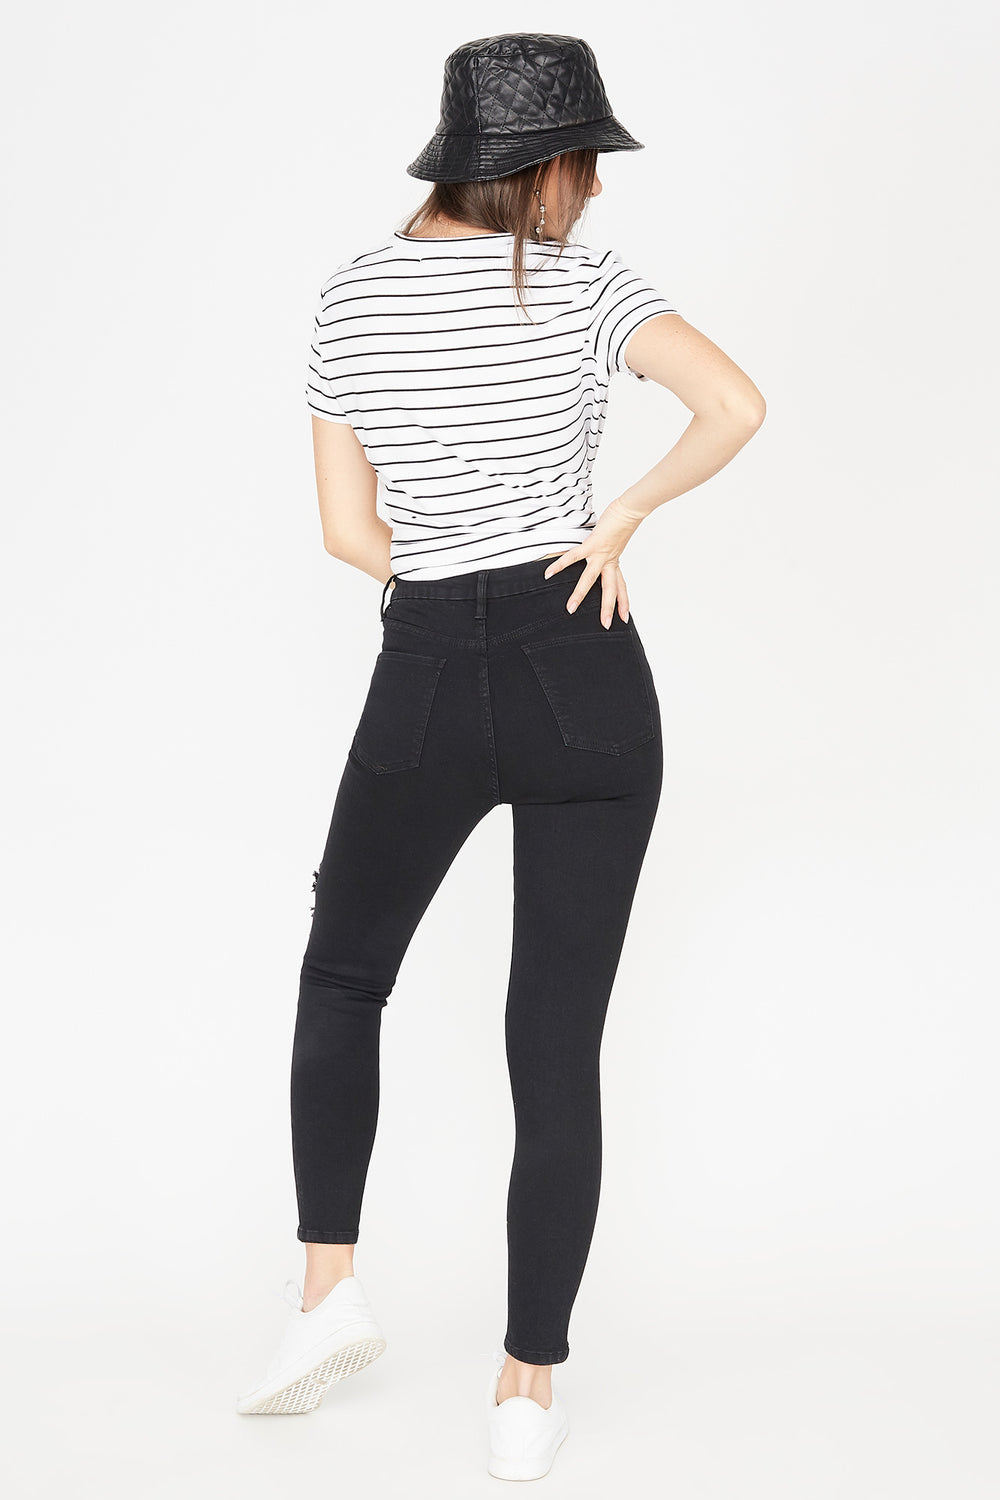 Refuge Ultra High-Rise Black Curvy Distressed Skinny Jean Black